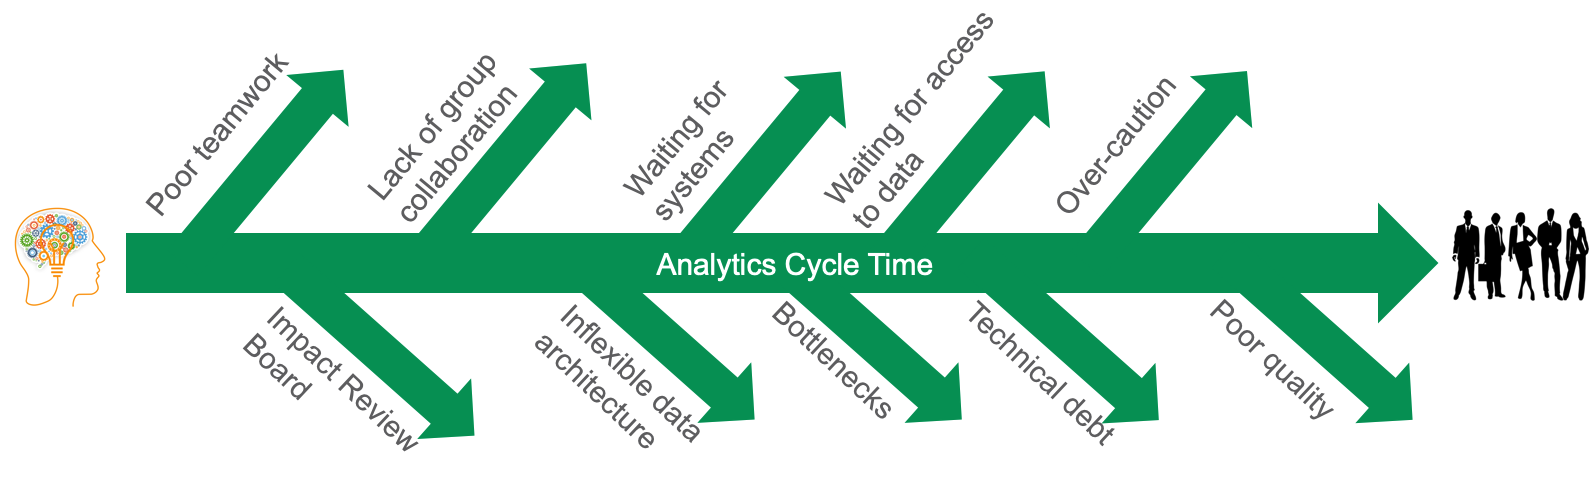 Figure 1: Many factors potentially interfere with the data team's ability to turn an idea into analytics.